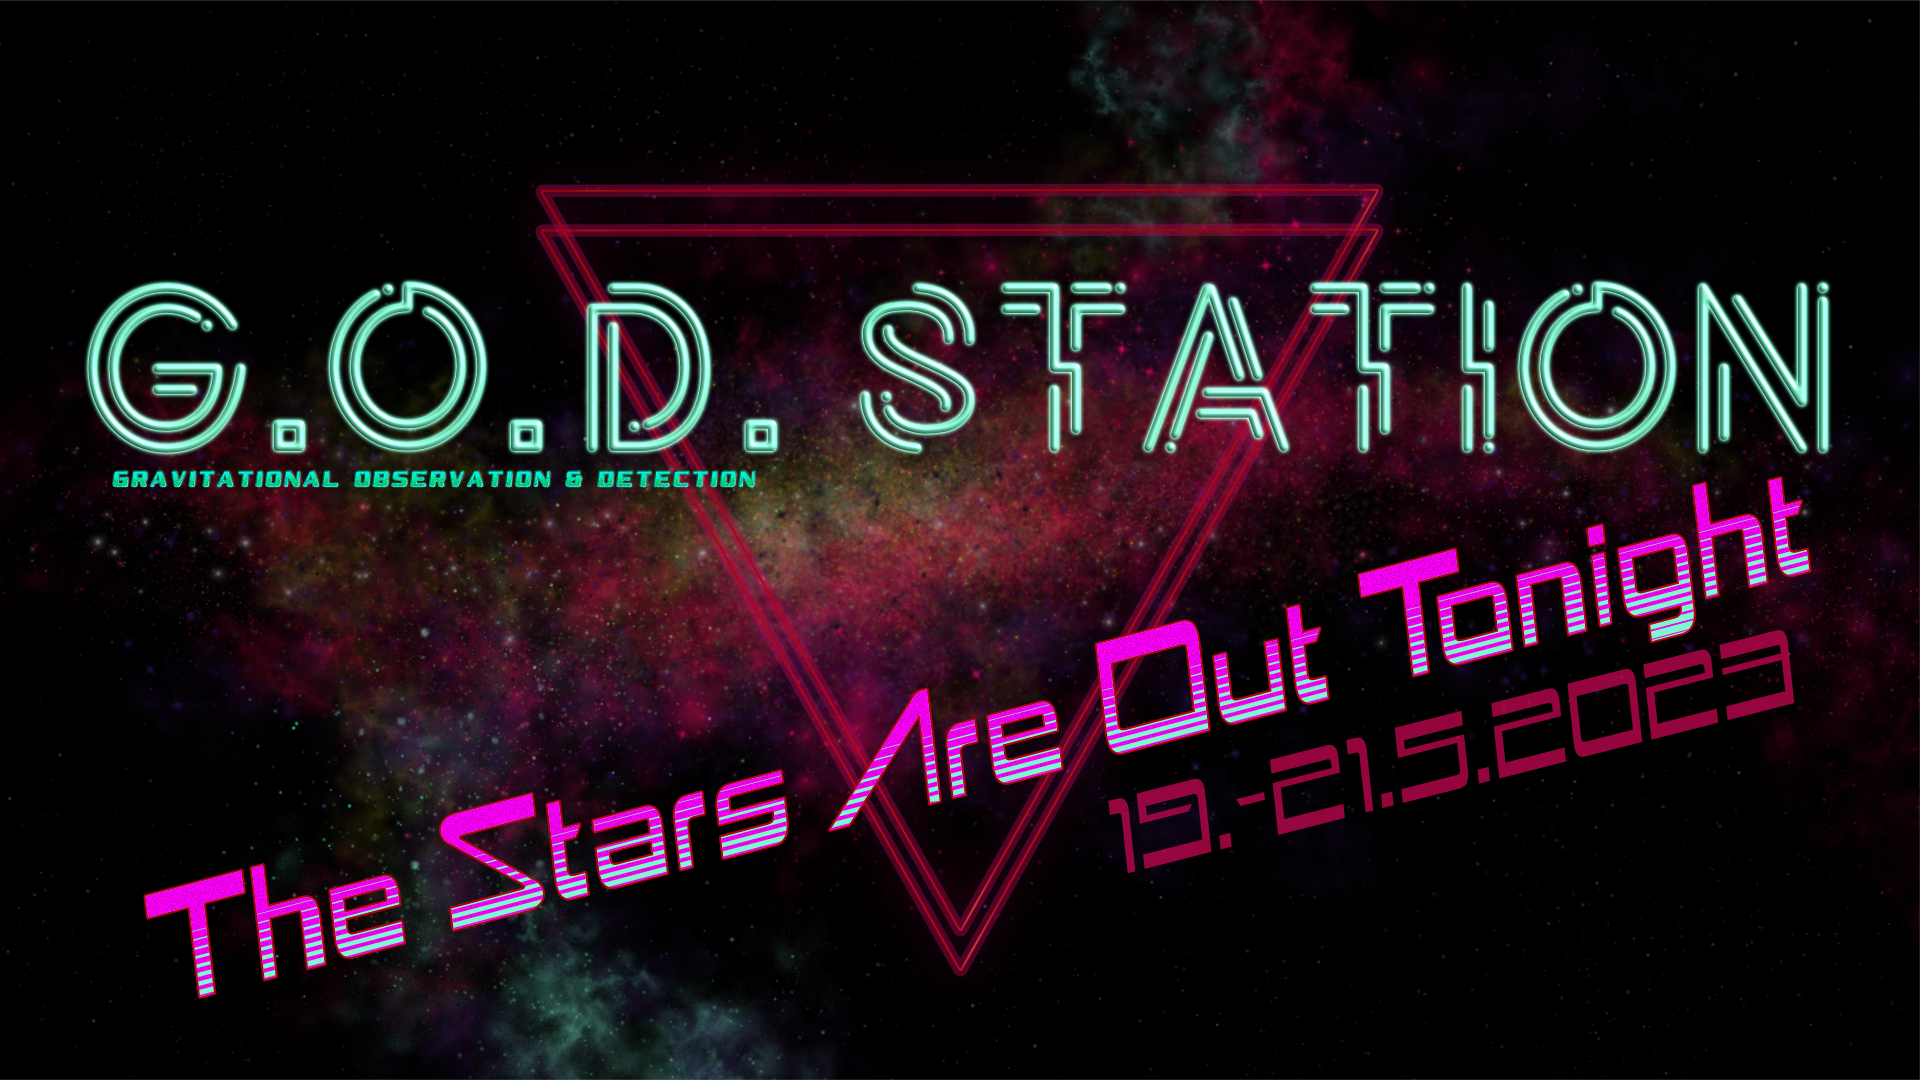 G.O.D. Station: The Stars Are Out Tonight